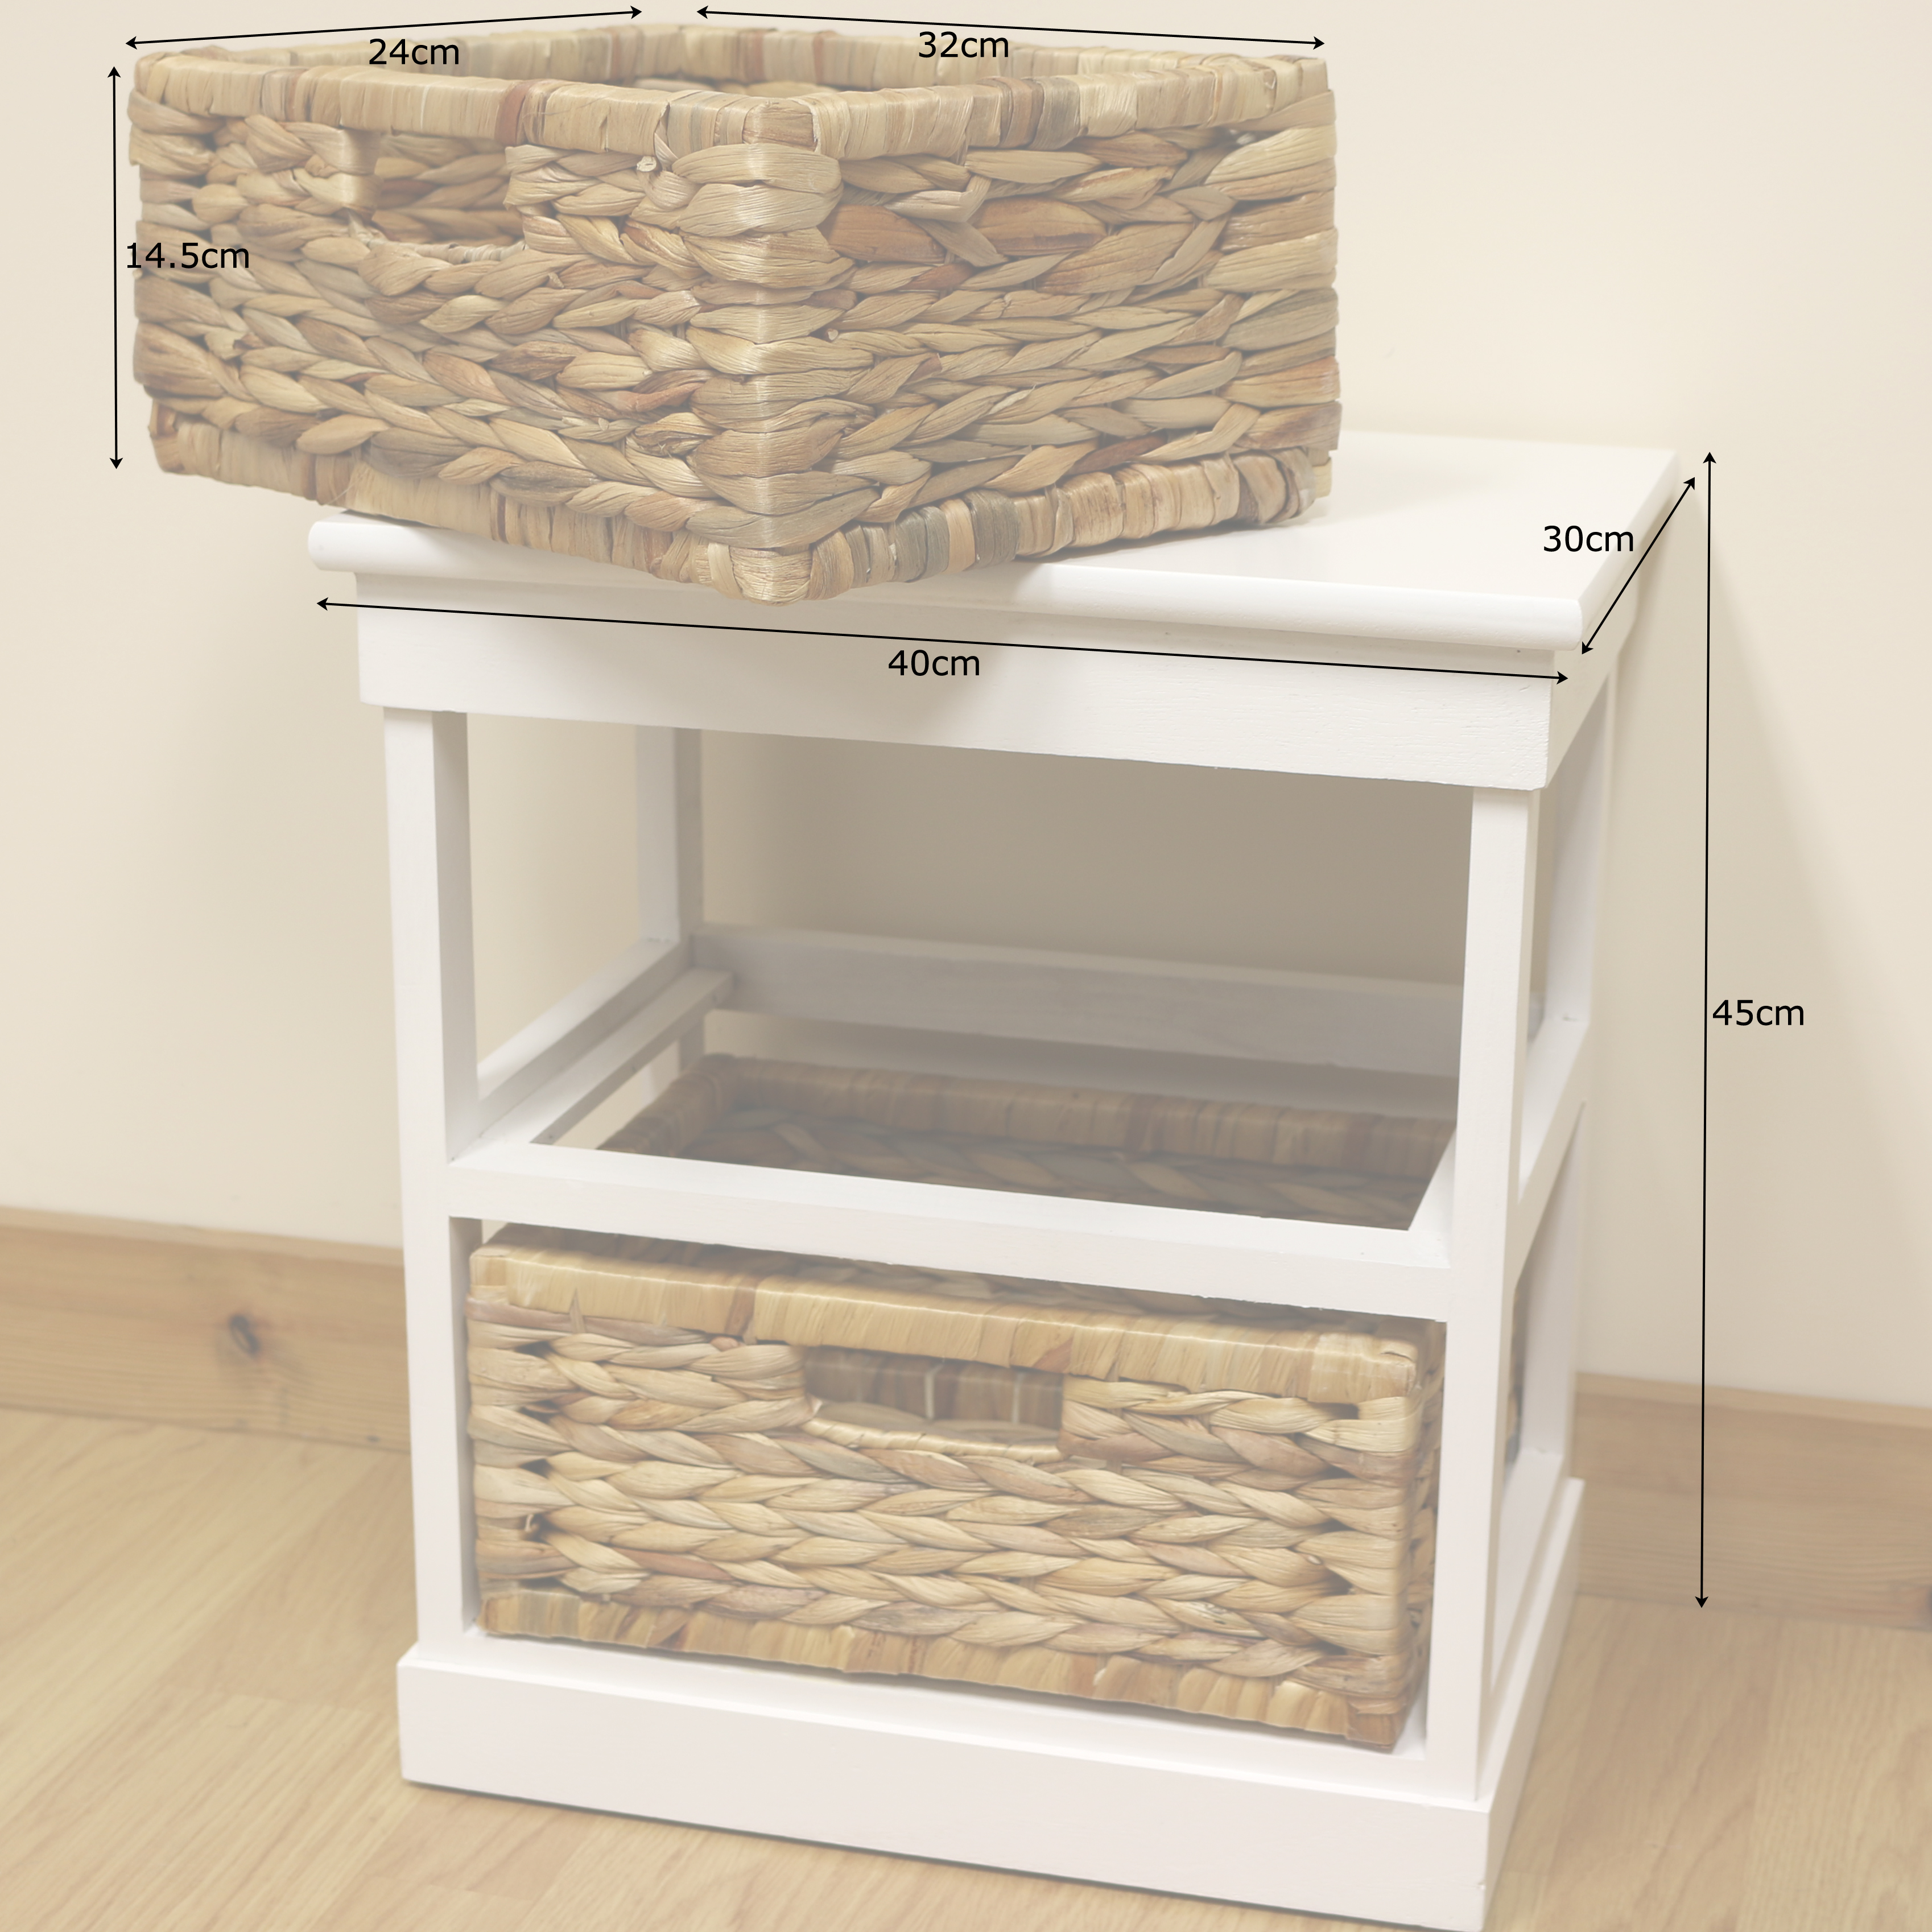 White 2 drawer basket bedside cabinet home storage unit for Bathroom cabinet with baskets